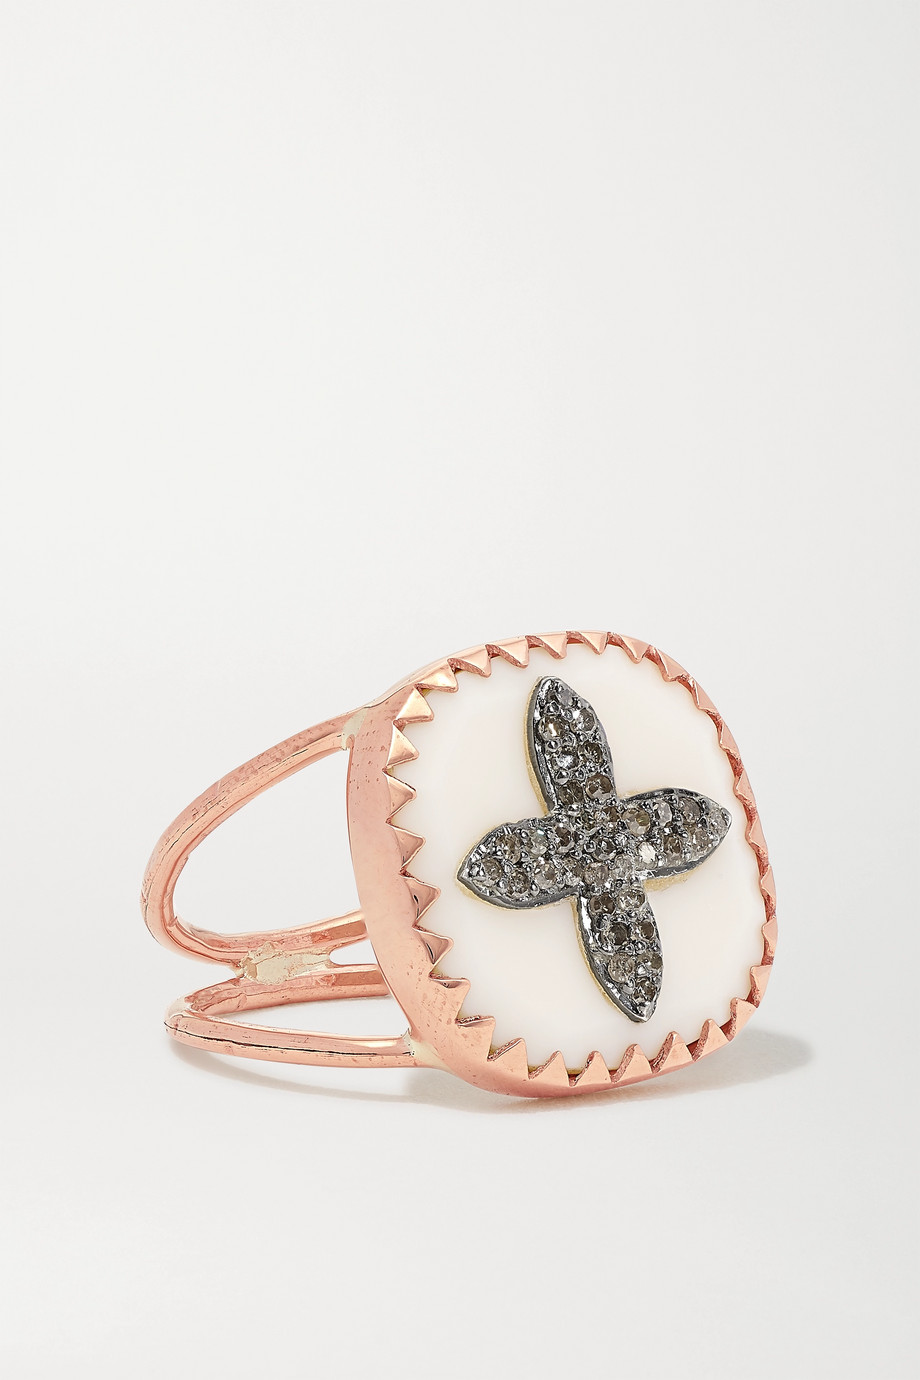 PASCALE MONVOISIN Bowie N°2 9-karat rose gold, sterling silver, resin and diamond ring